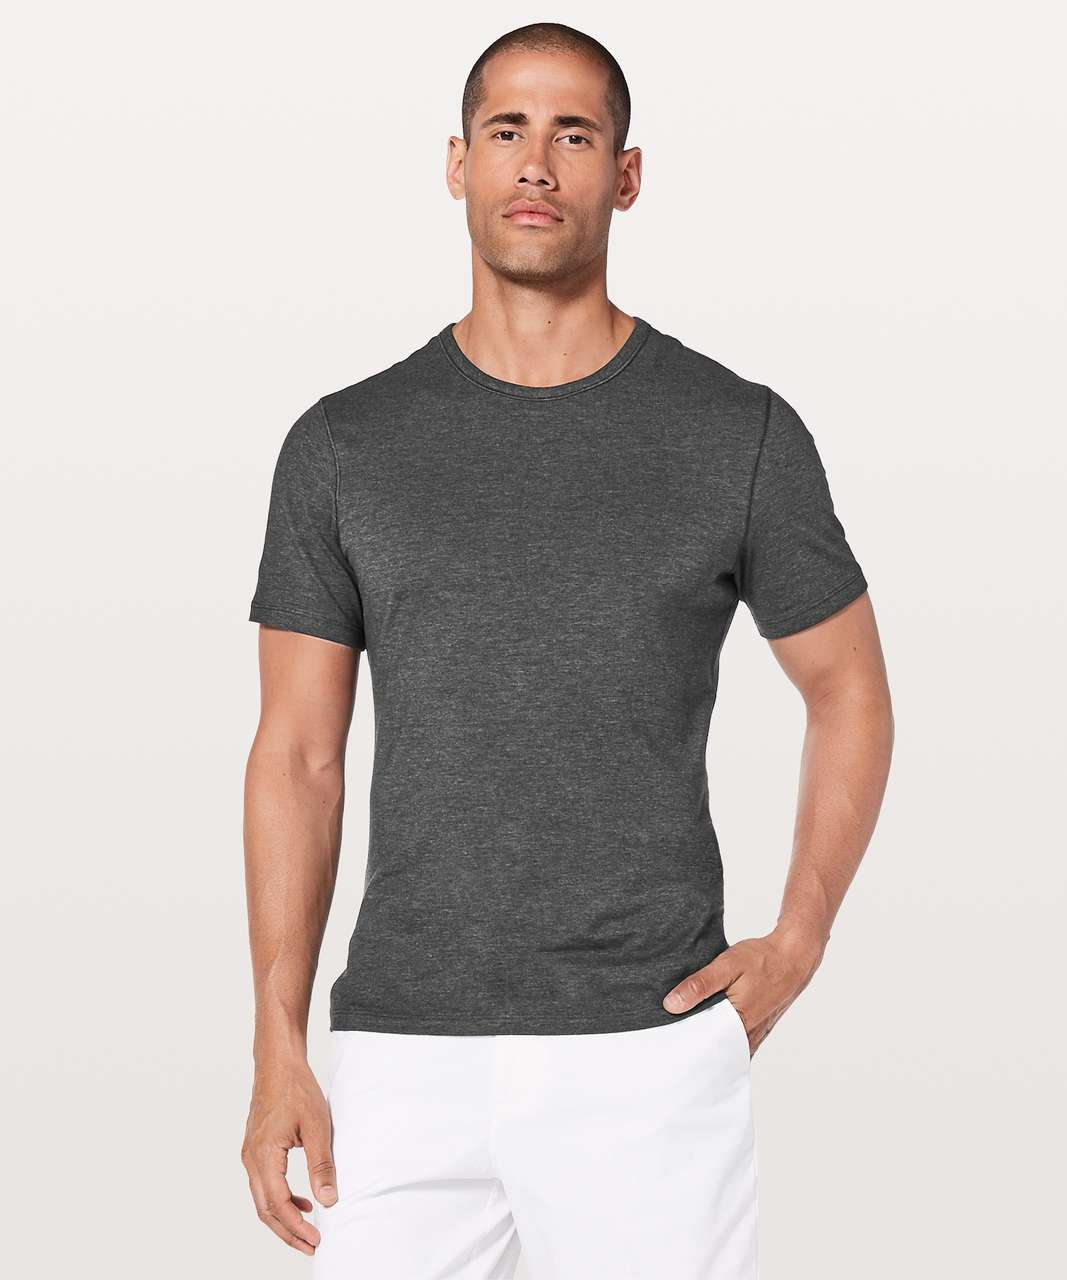 Lululemon 5 Year Basic Tee *Updated Fit - Heathered Black